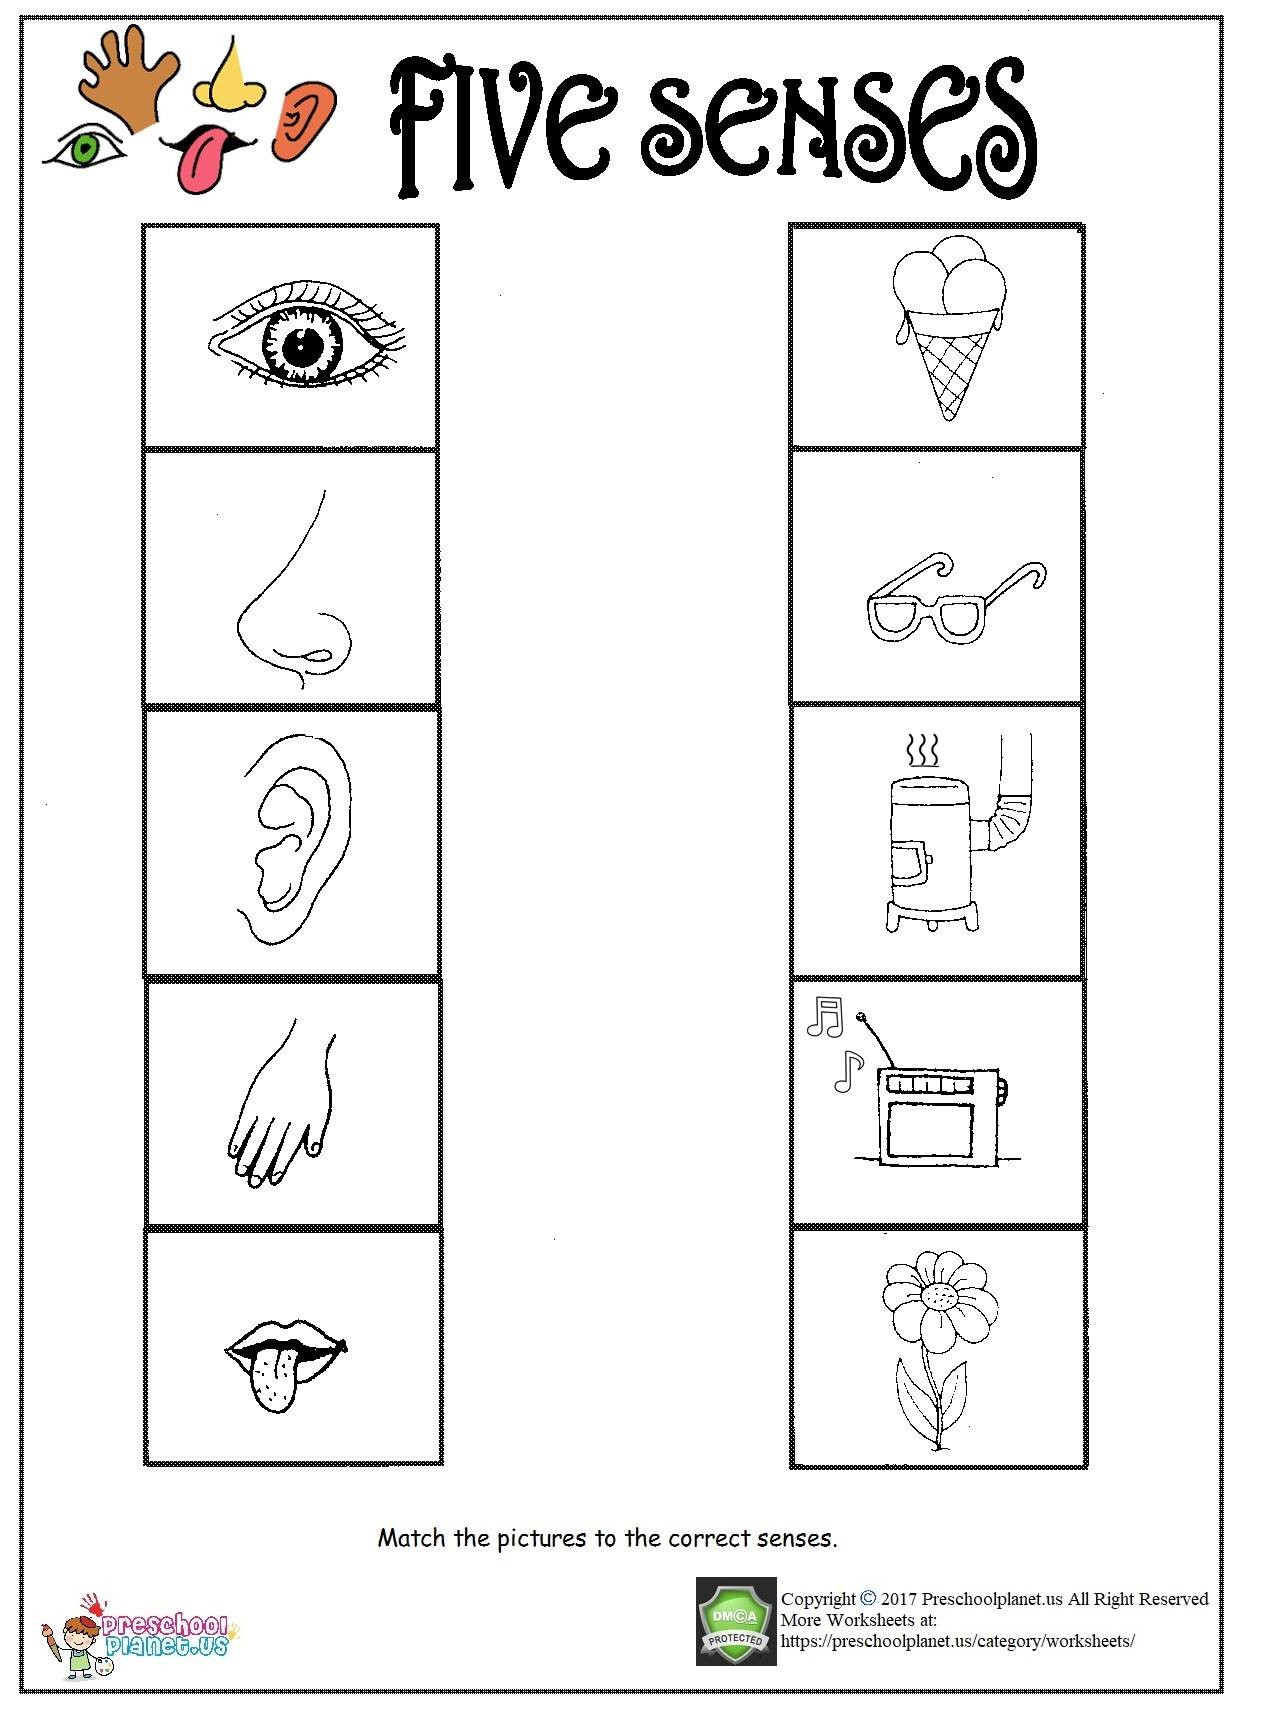 5 Senses Worksheet Preschool Printable Five Senses Worksheet – Preschoolplanet